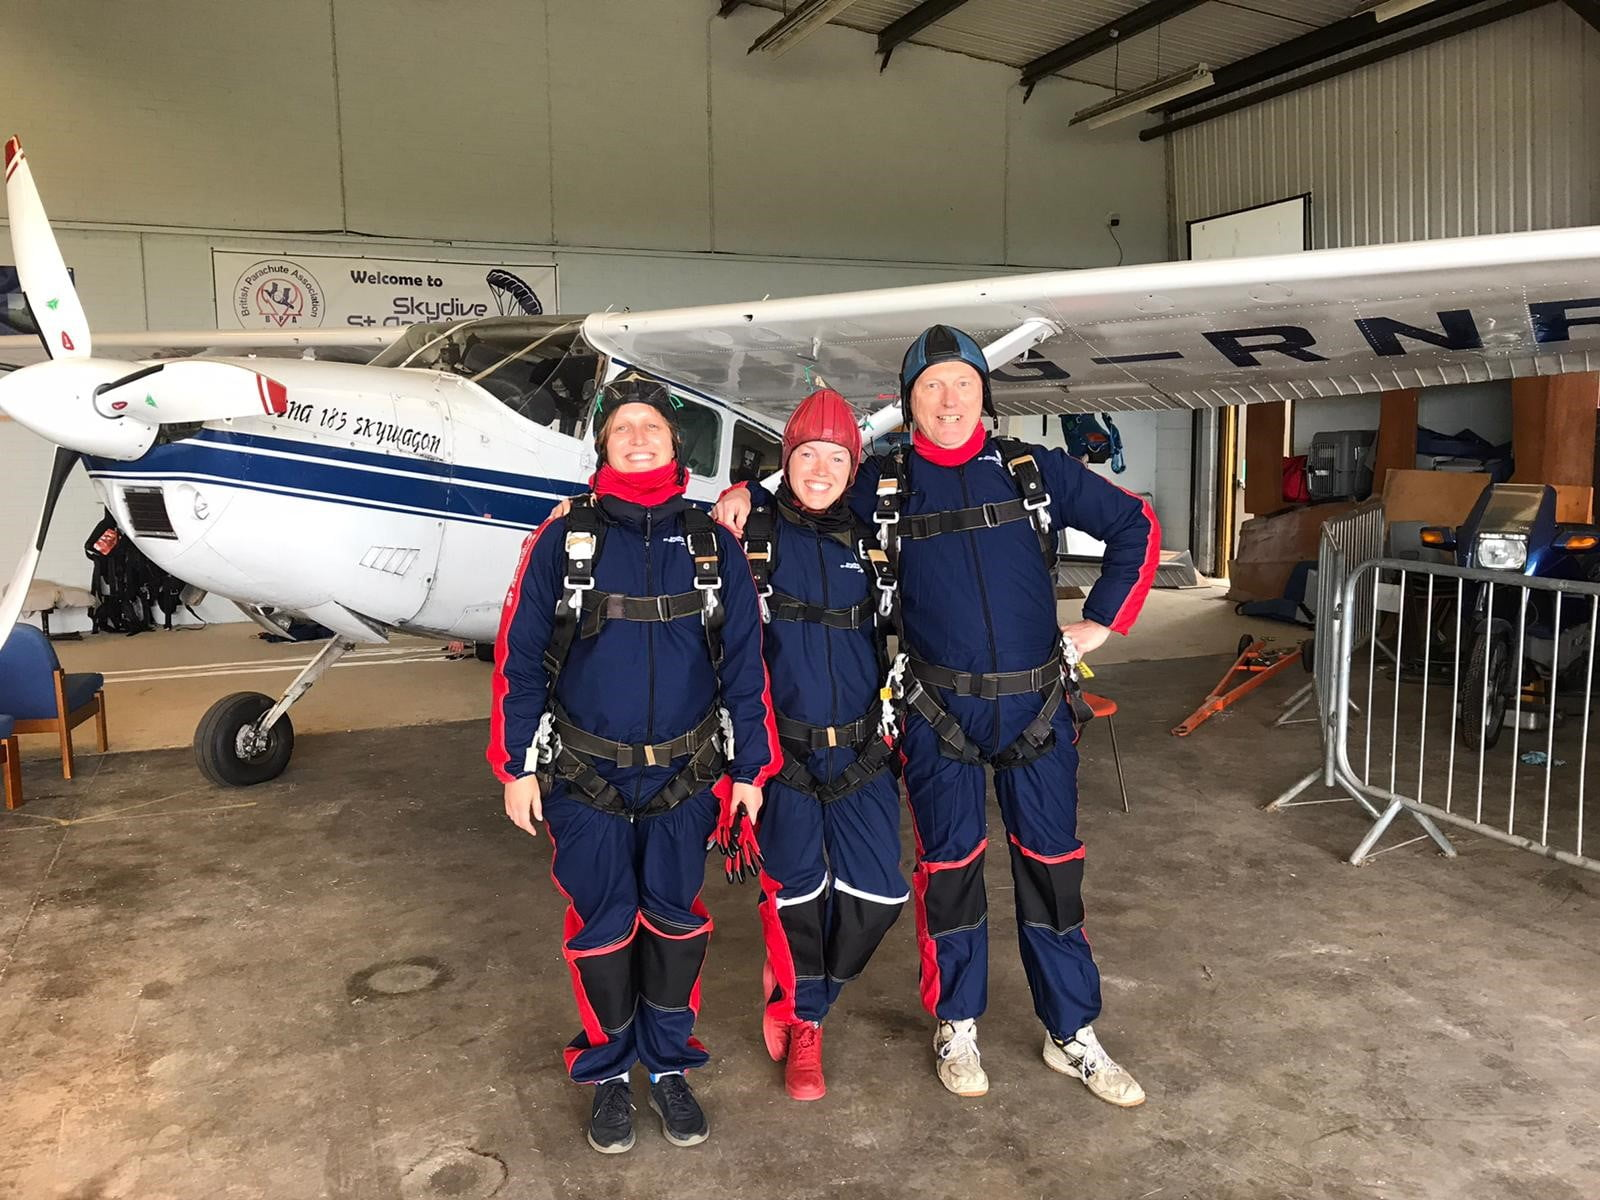 Emma, Katie and Jon Pattinson pose by the aeroplane before their fundraising skydive for VOCAL